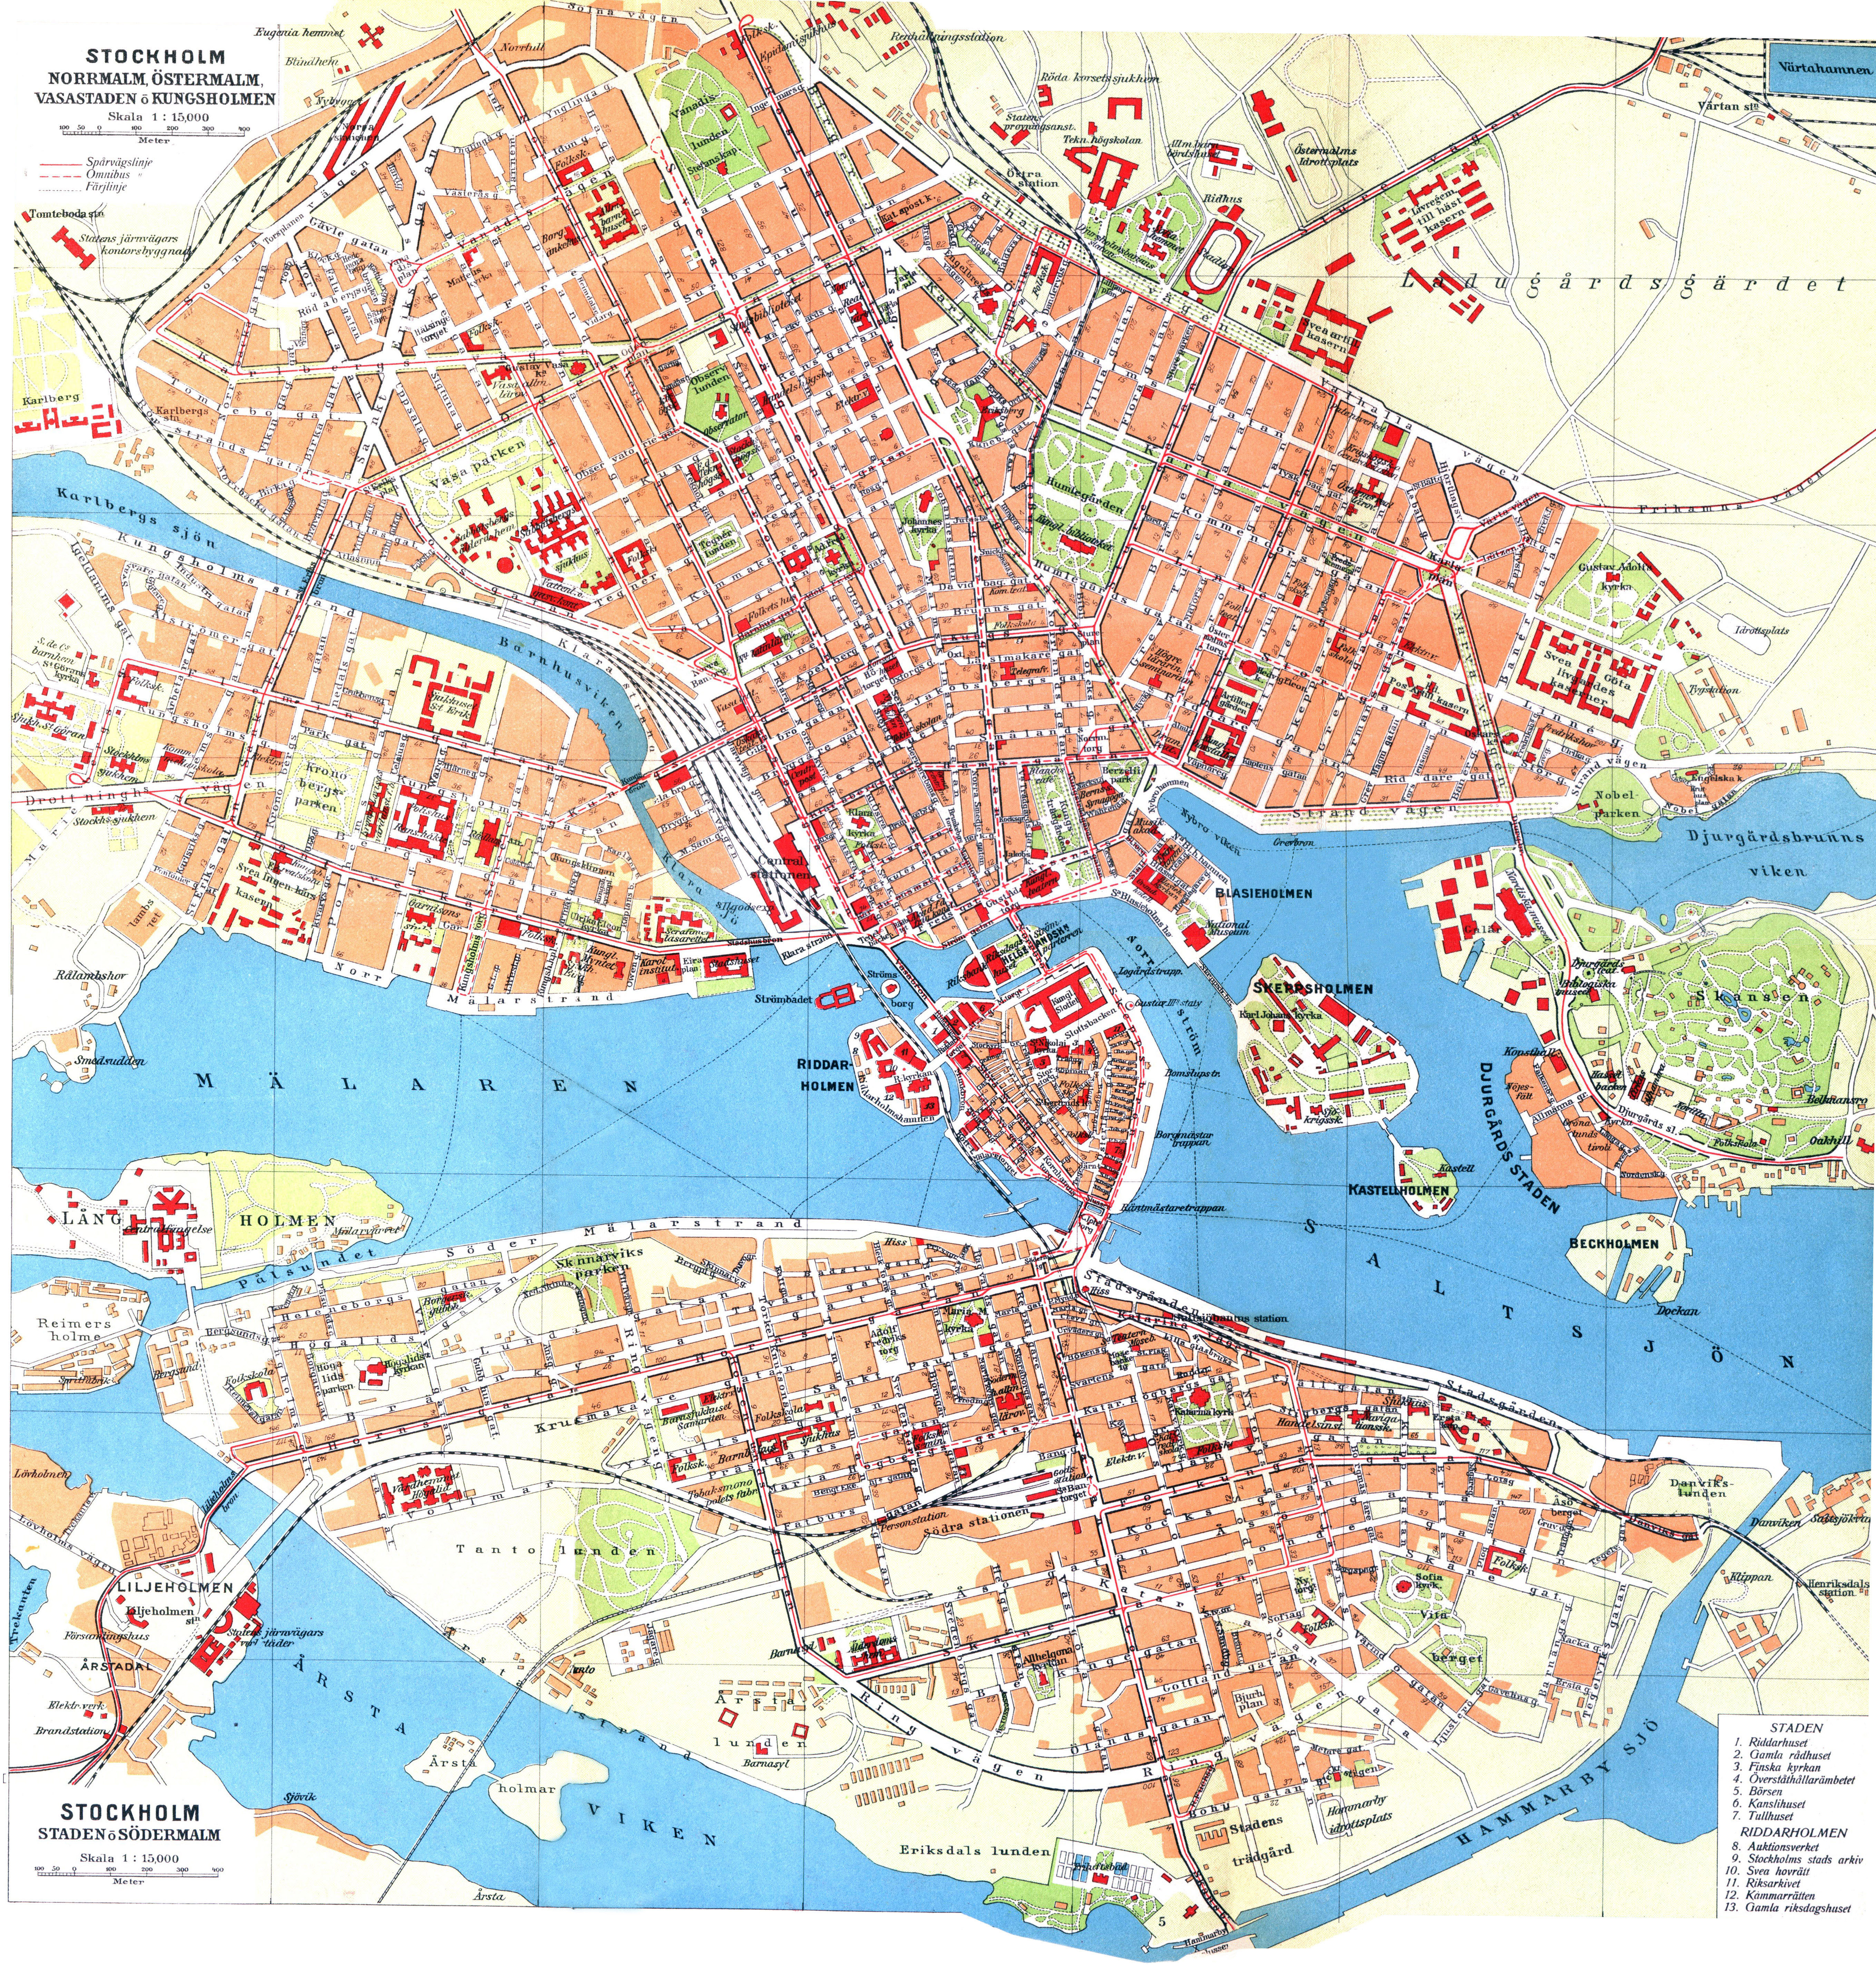 Large Detailed Old Map Of Stockholm City Stockholm Sweden - Sweden map stockholm